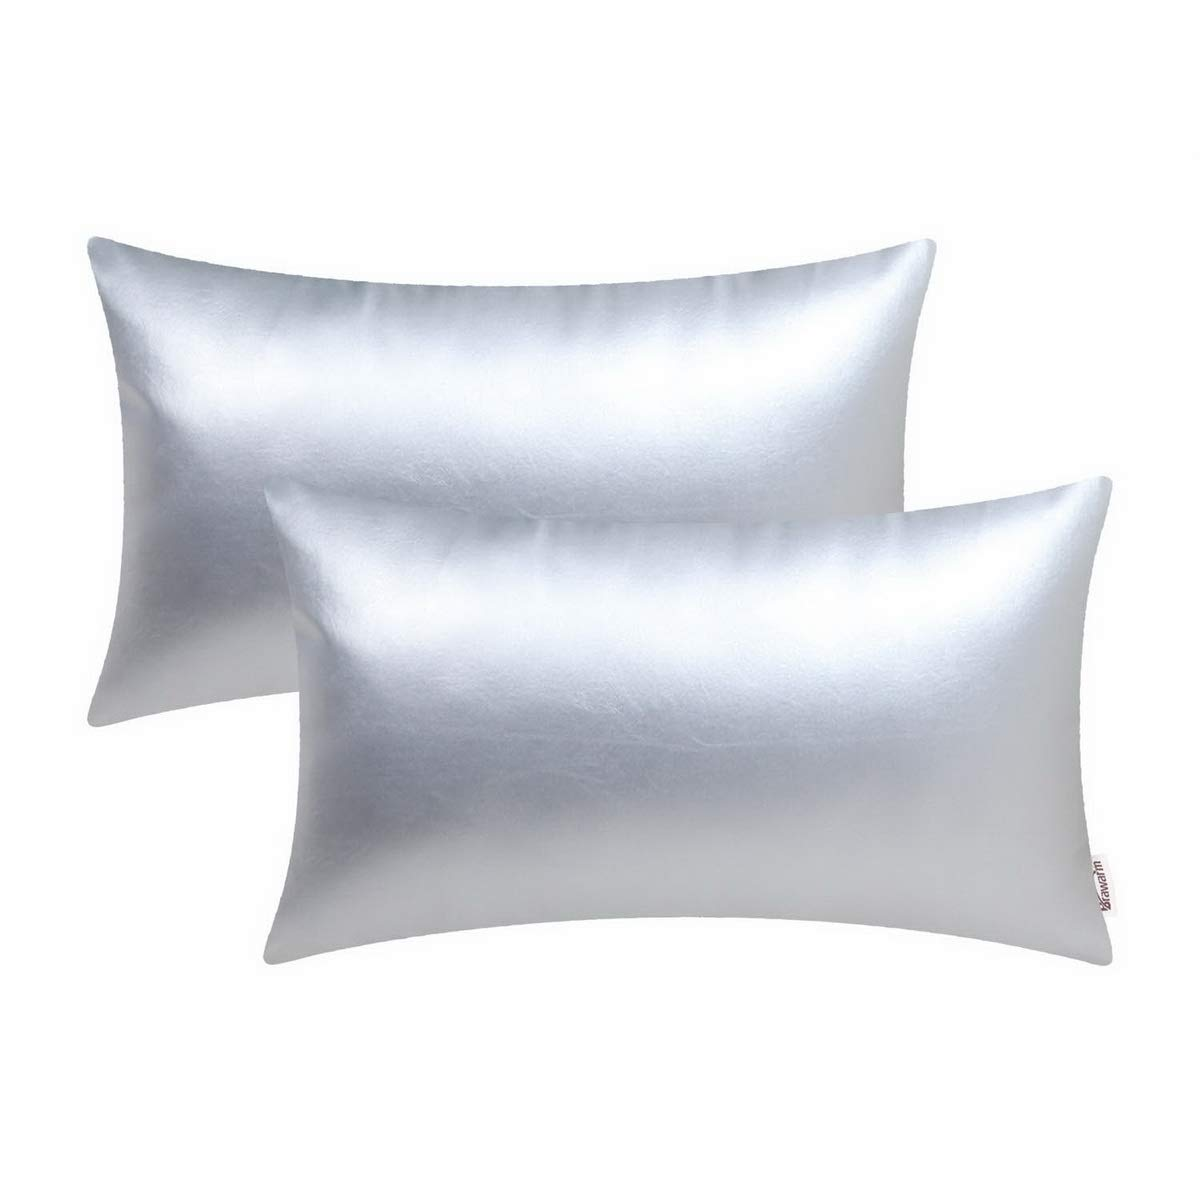 BRAWARM Pack of 2 Cozy Bolster Pillow Covers Cases for Couch Sofa Home Decoration Solid Dyed Soft Faux Leather Both Sides 12 X 20 Inches Silver